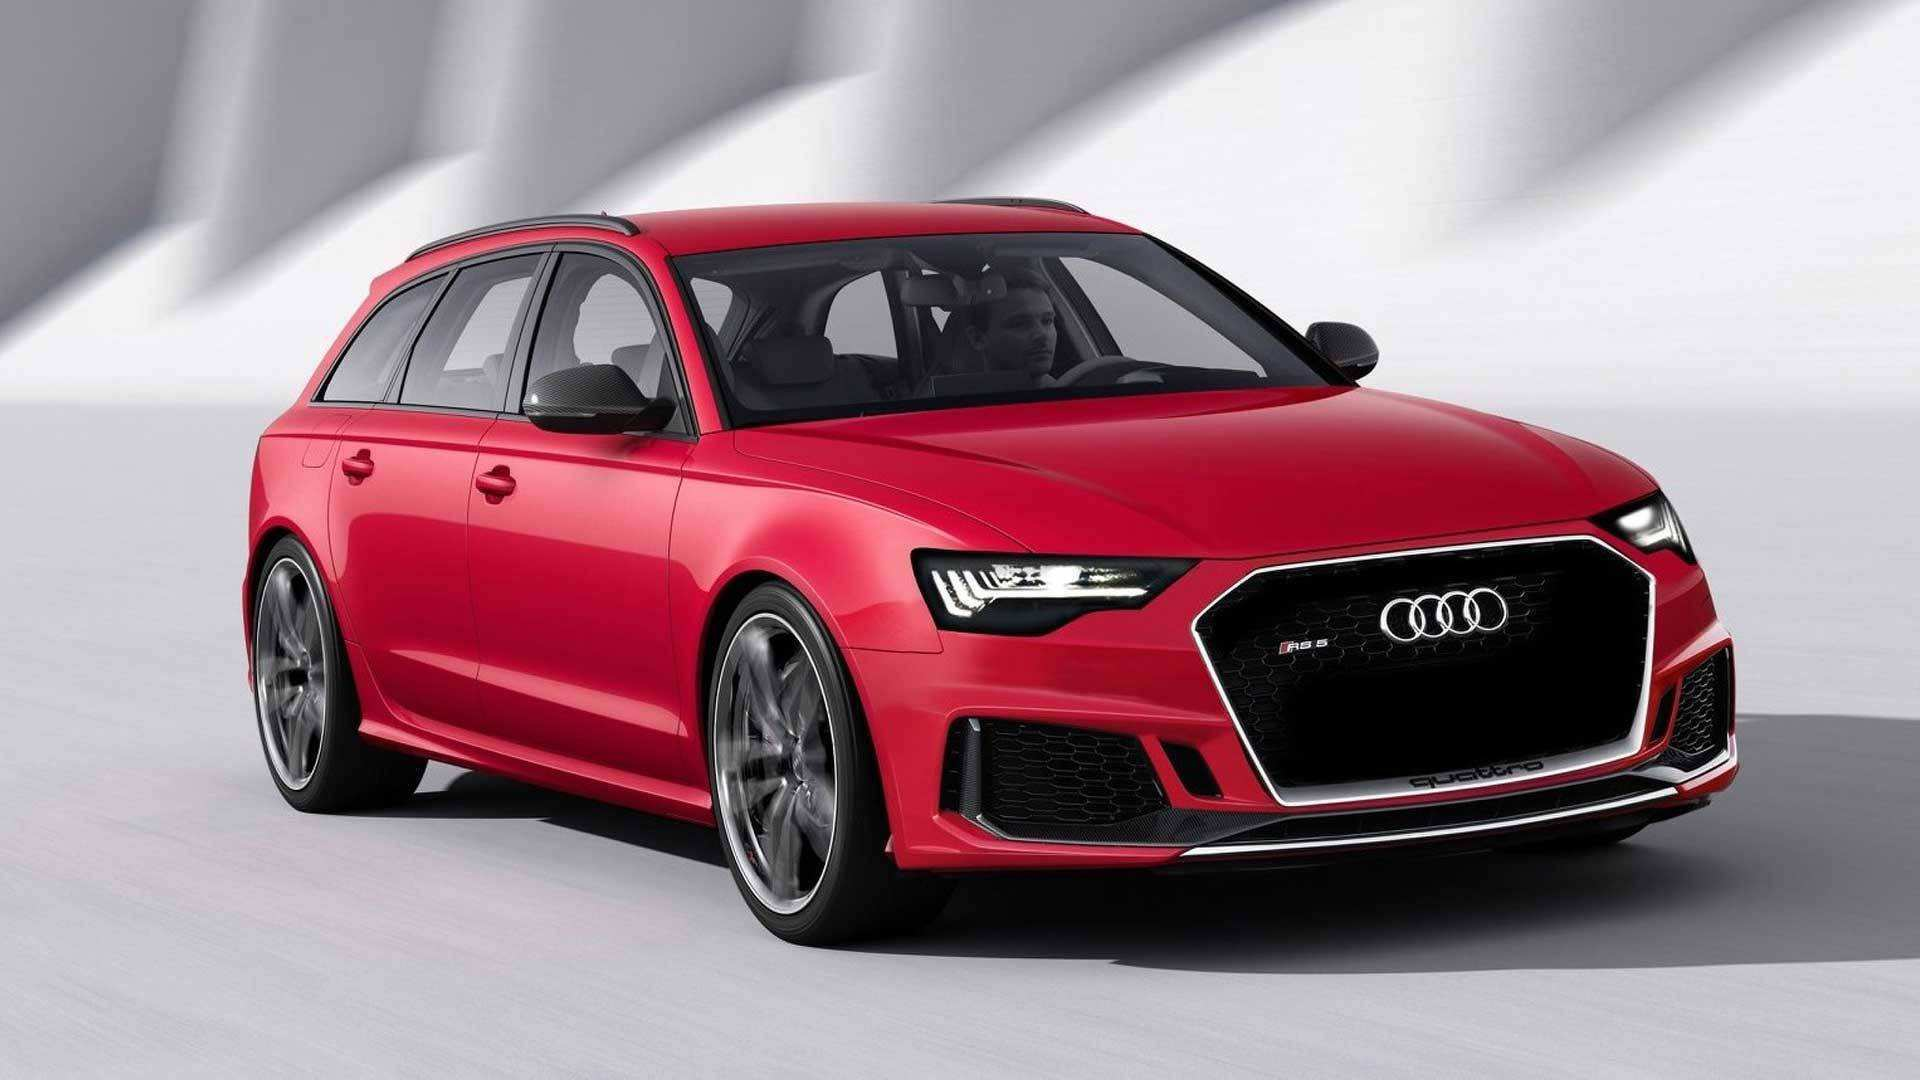 43 Best Review 2019 Audi Rs6 Spy Shoot by 2019 Audi Rs6